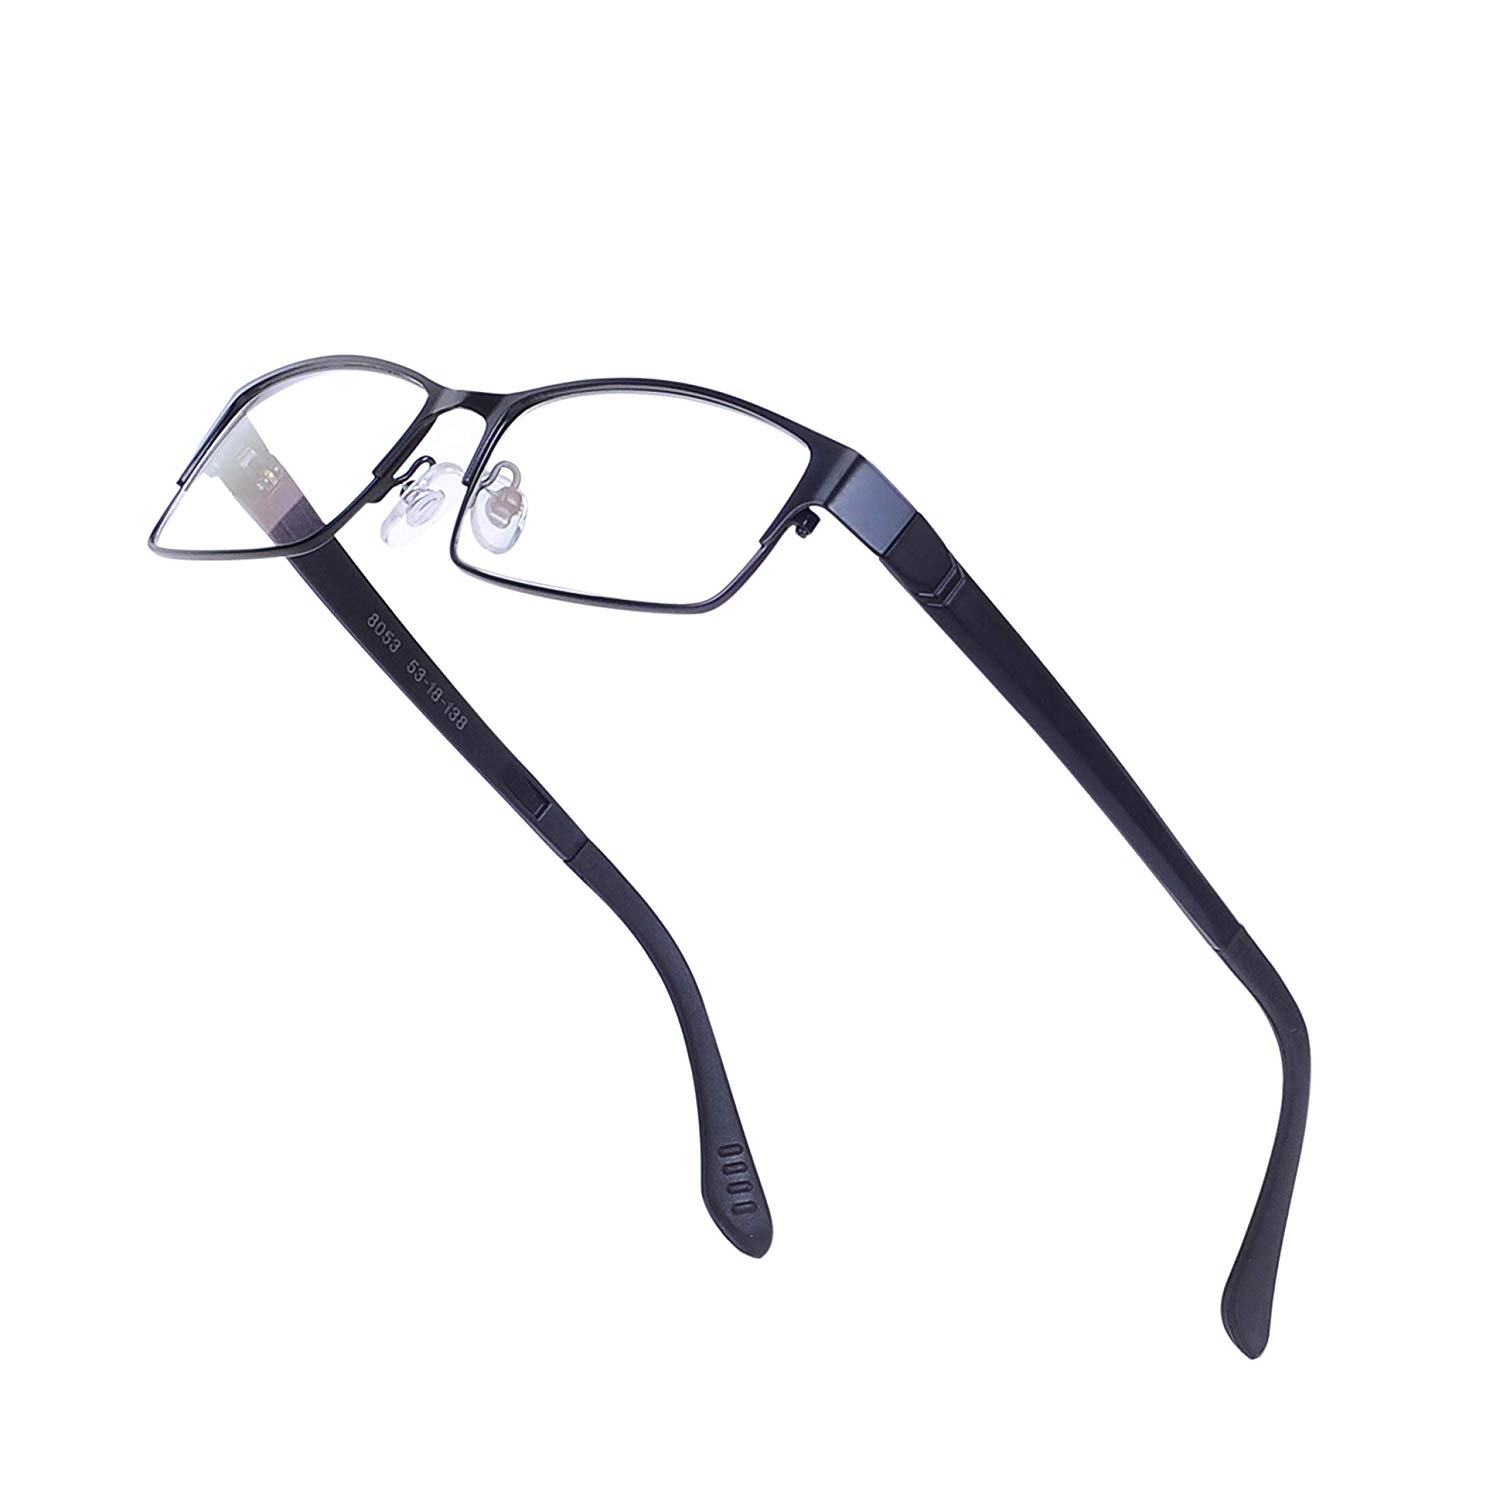 56139f9e7f6a Get Quotations · Rectangular Glasses Frame for Men Non-prescription Clear  Lens Metal Eyewear with Case